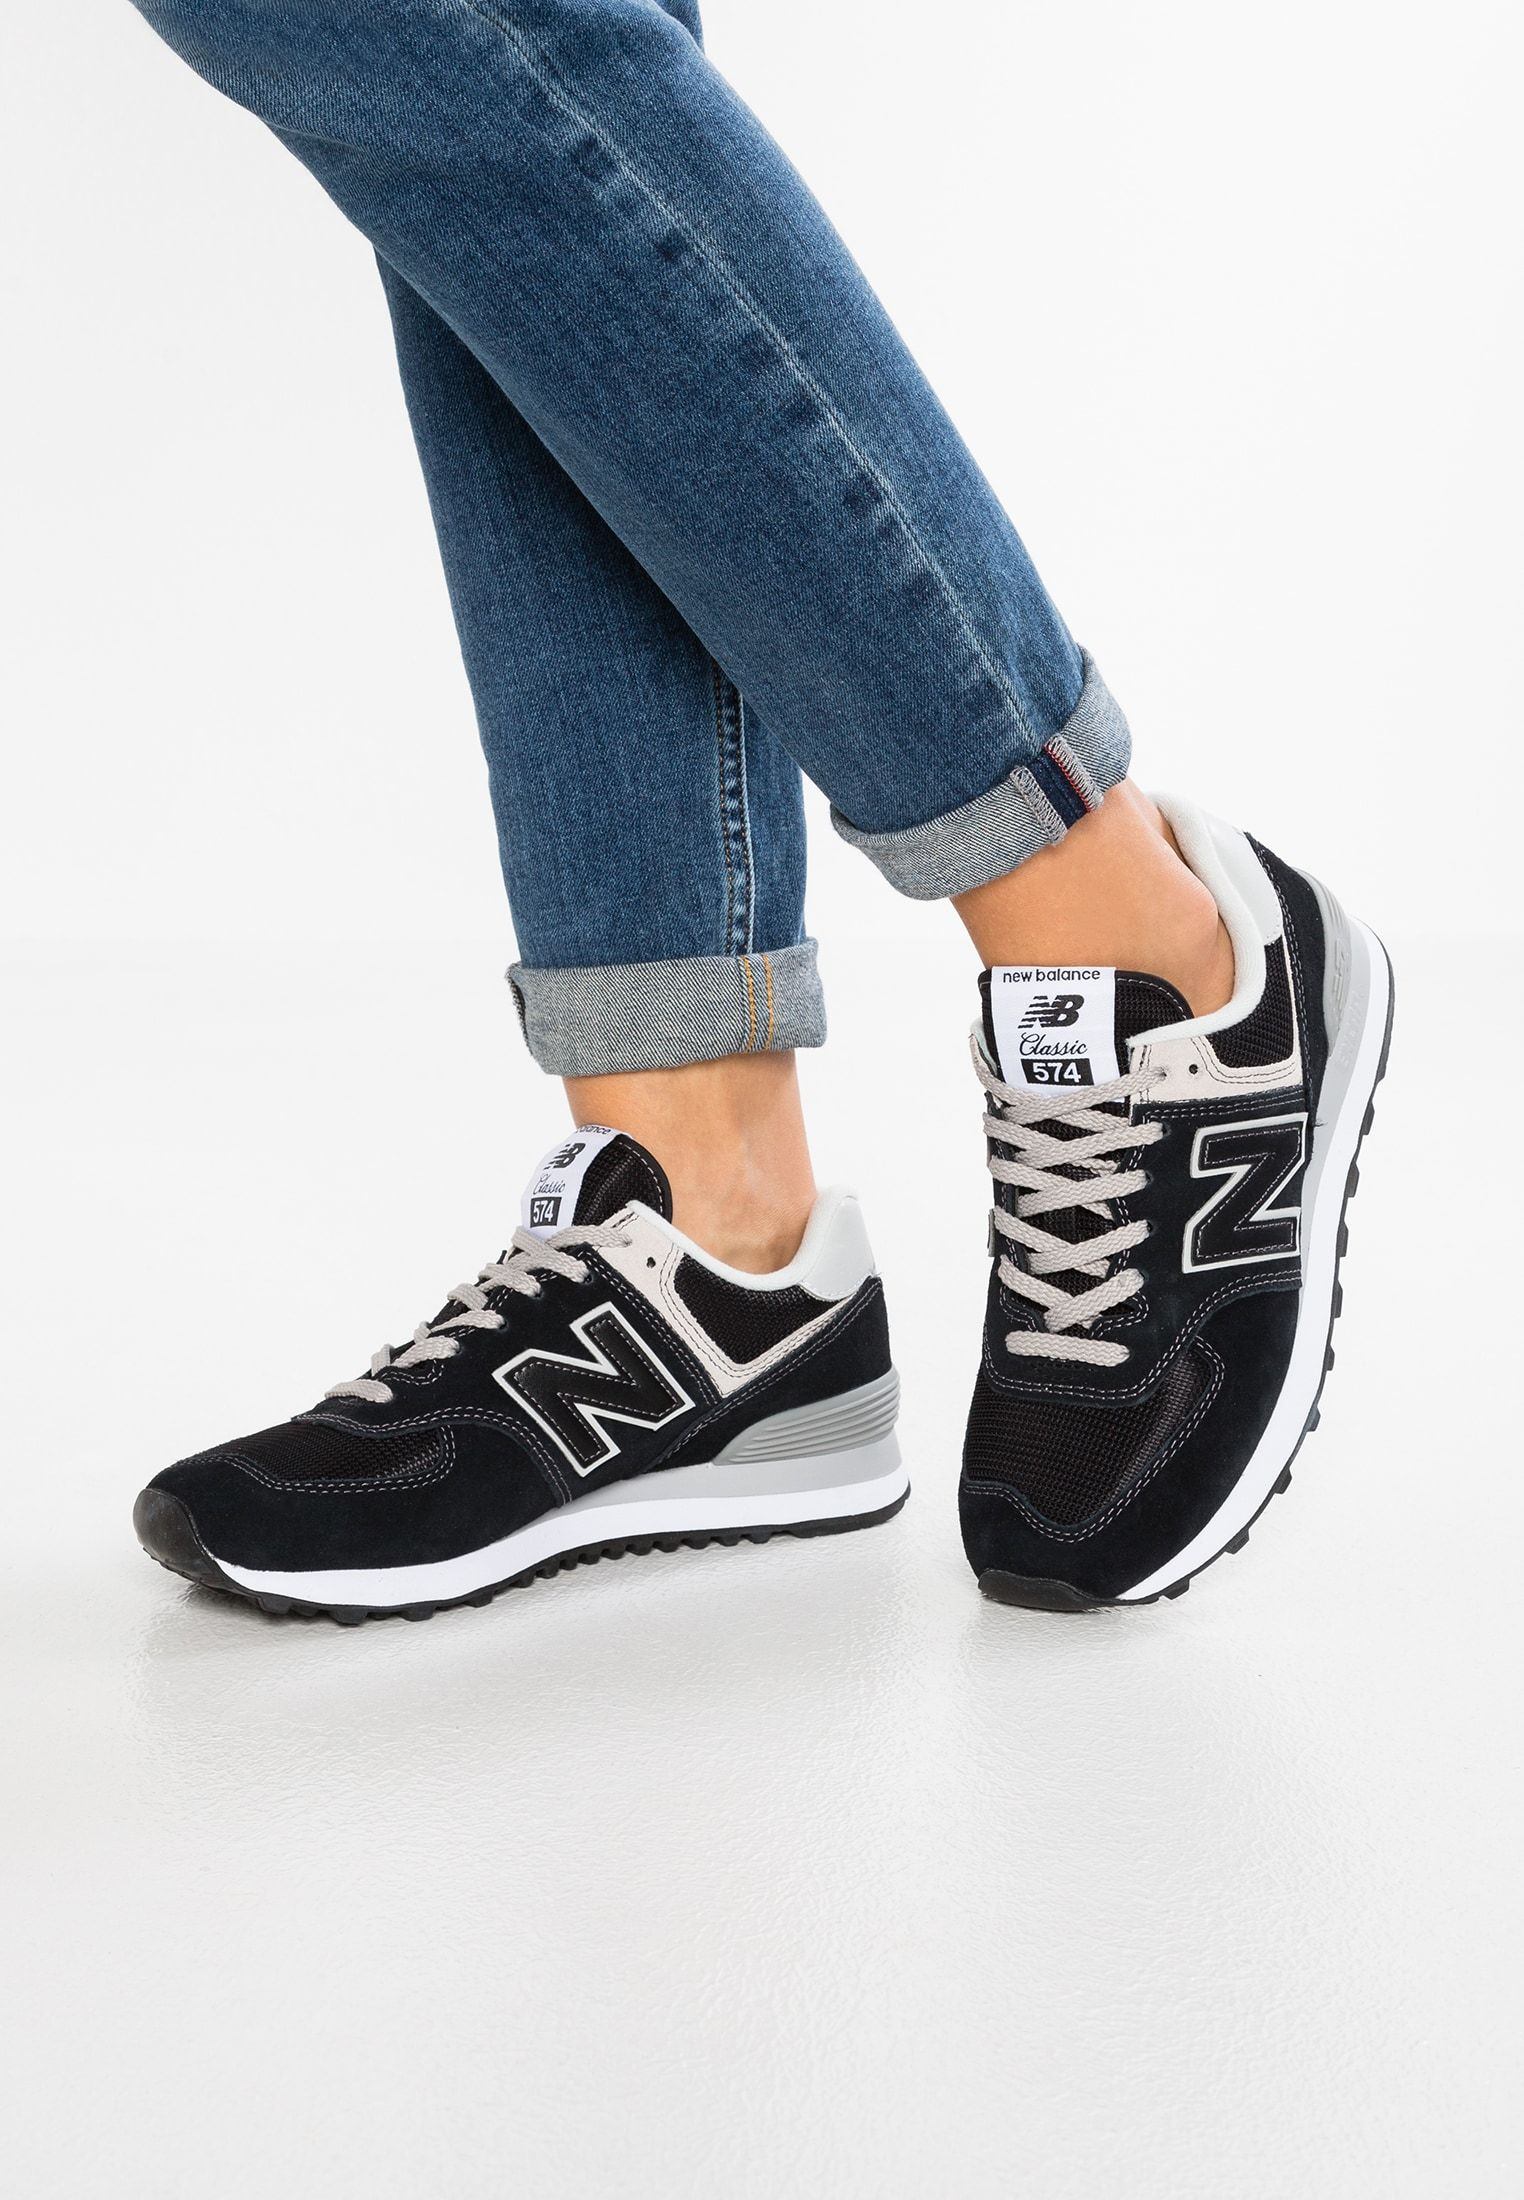 separation shoes 16ce9 976ff WL574 - Trainers - black in 2019 | Shoes Boots Bags | New ...